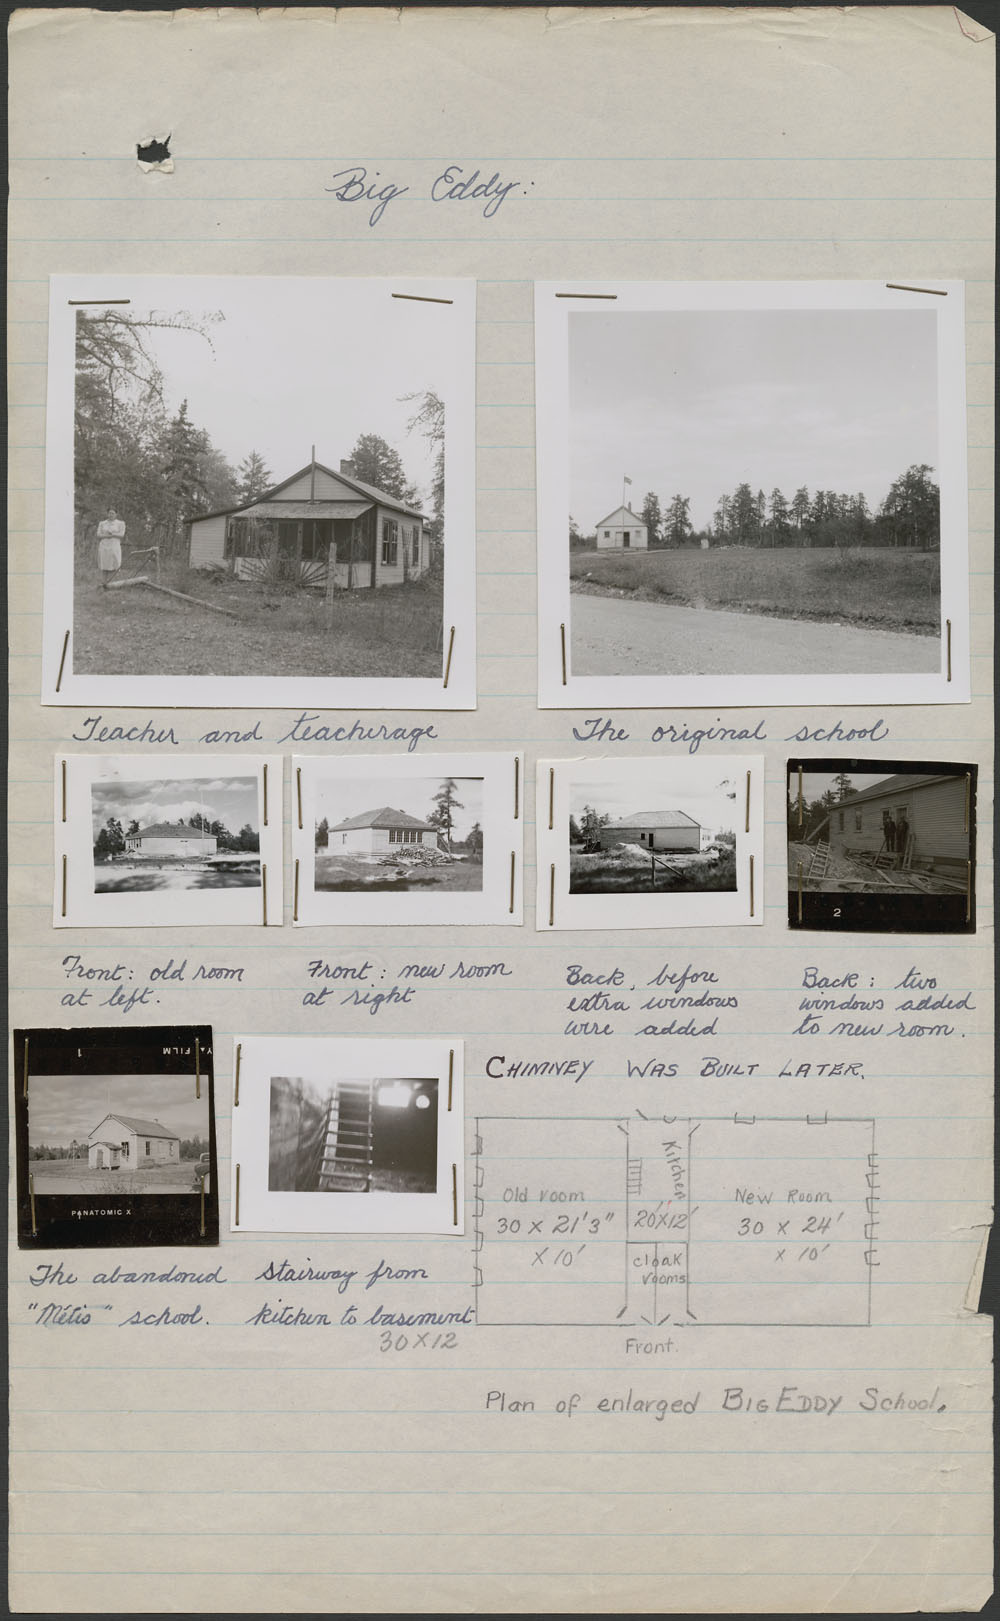 Big Eddy Indian Day School, photos of the teacher and the teacher's residence, with handwritten notes, The Pas, ca. summer 1947